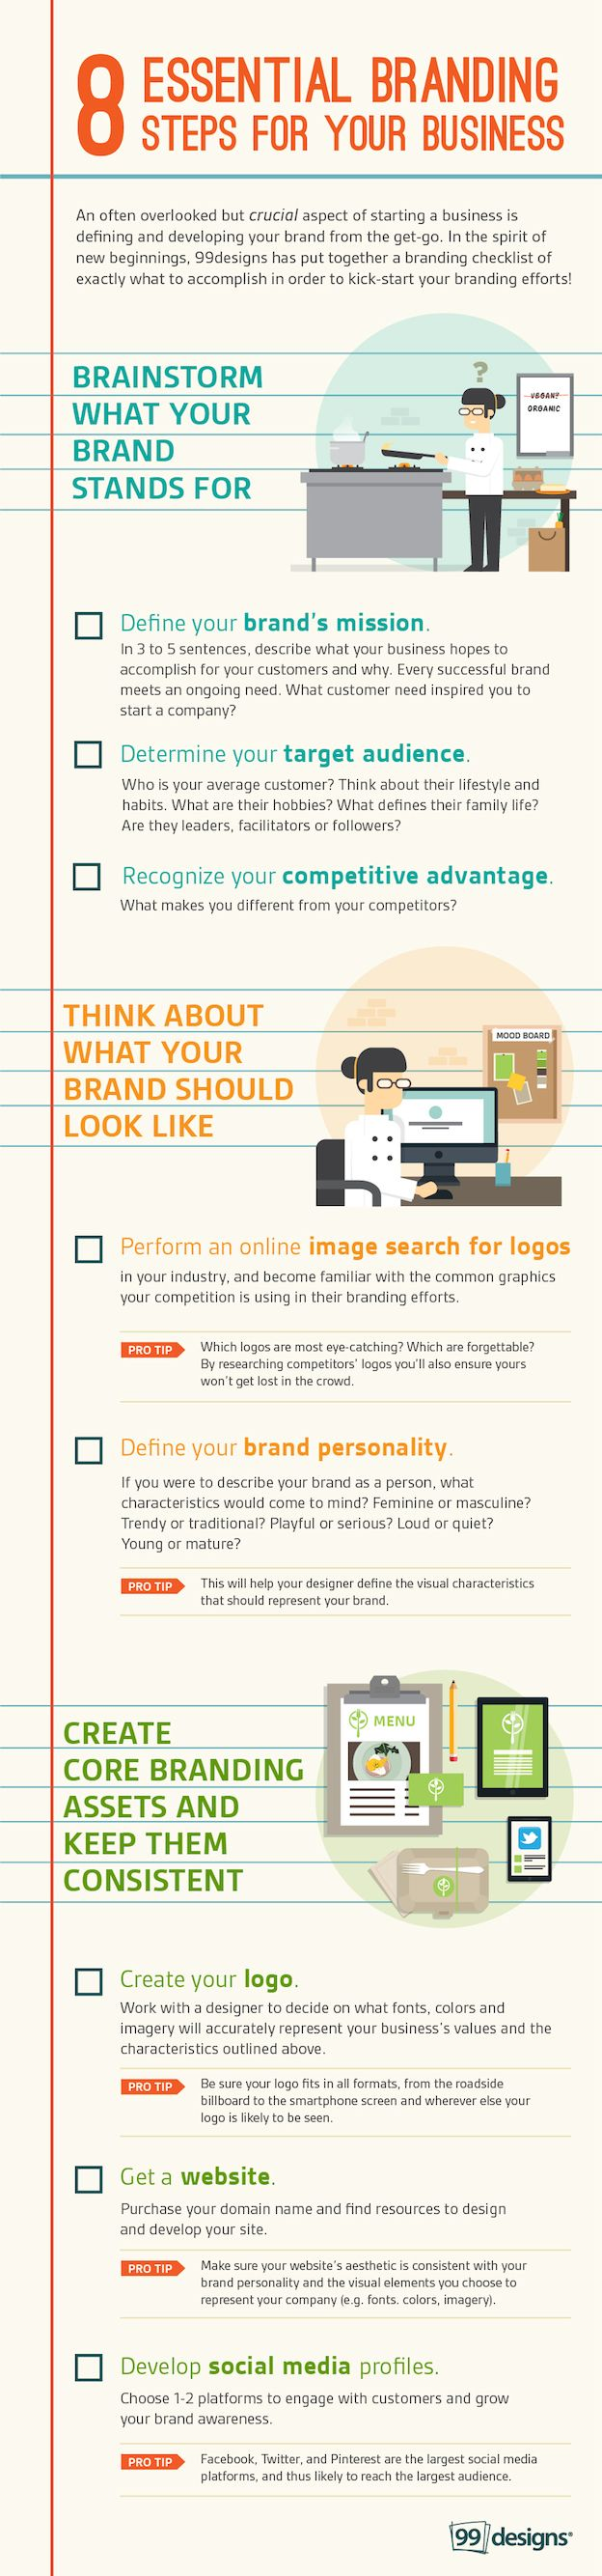 8 Essential Branding Steps for Your Business Infographic.